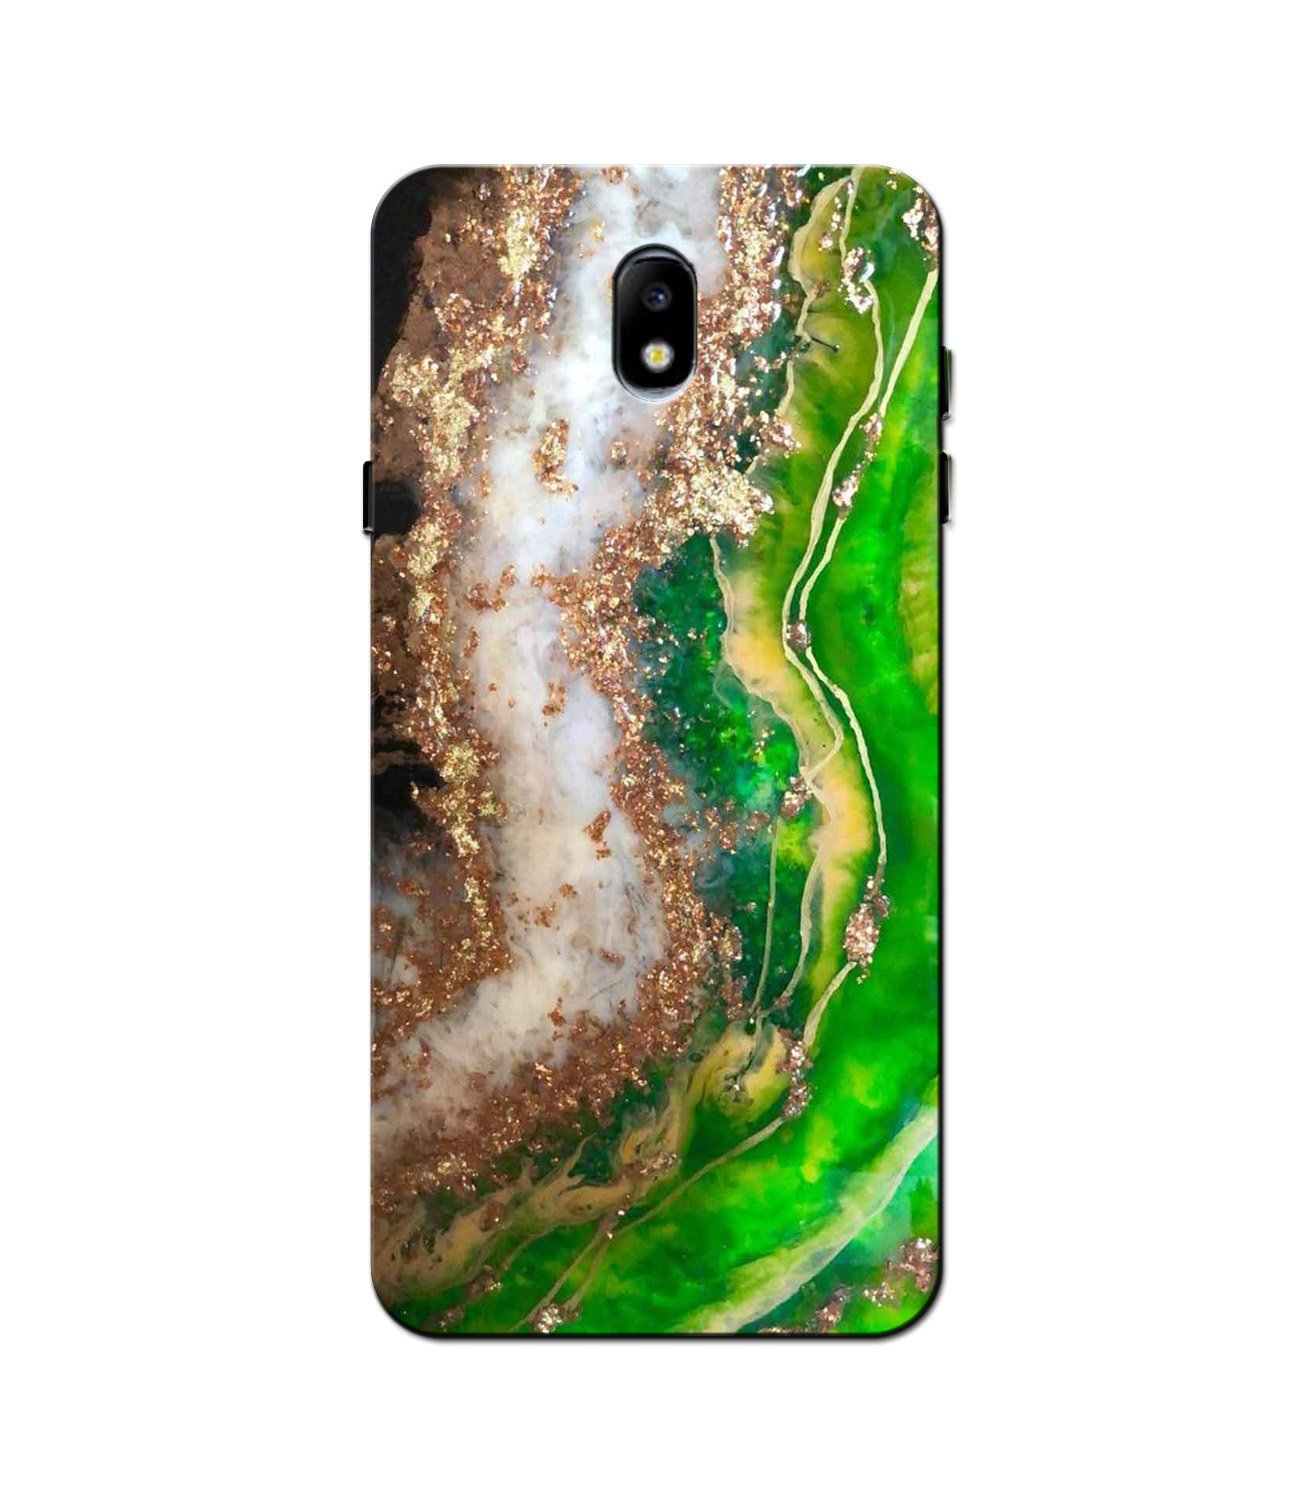 Marble Texture Mobile Back Case for Galaxy J5 Pro  (Design - 307)